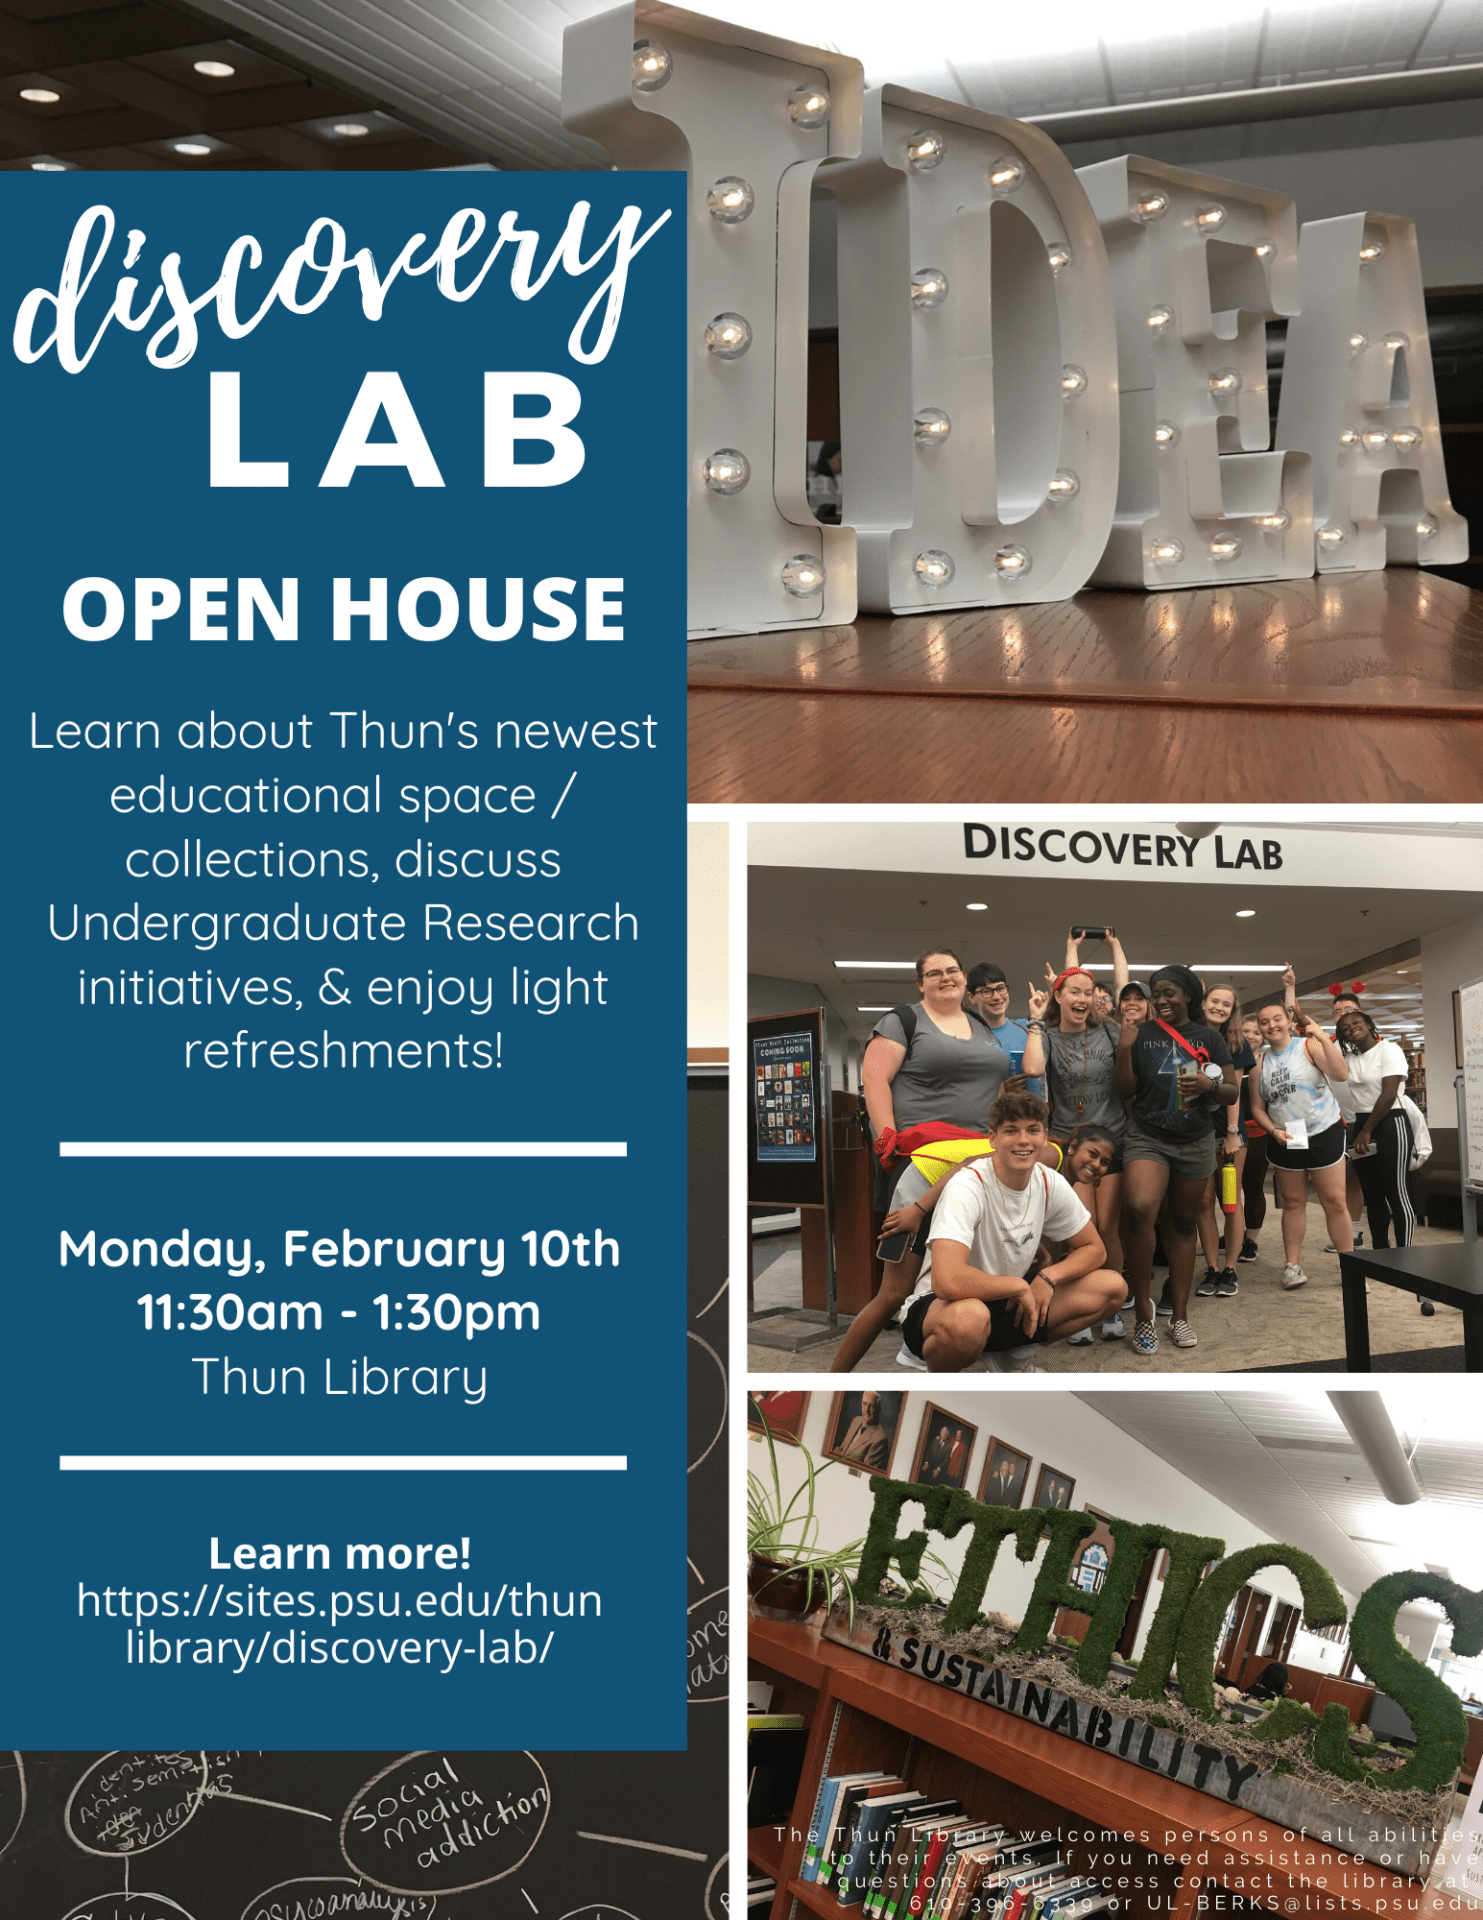 Disovery Lab Open House Flyer